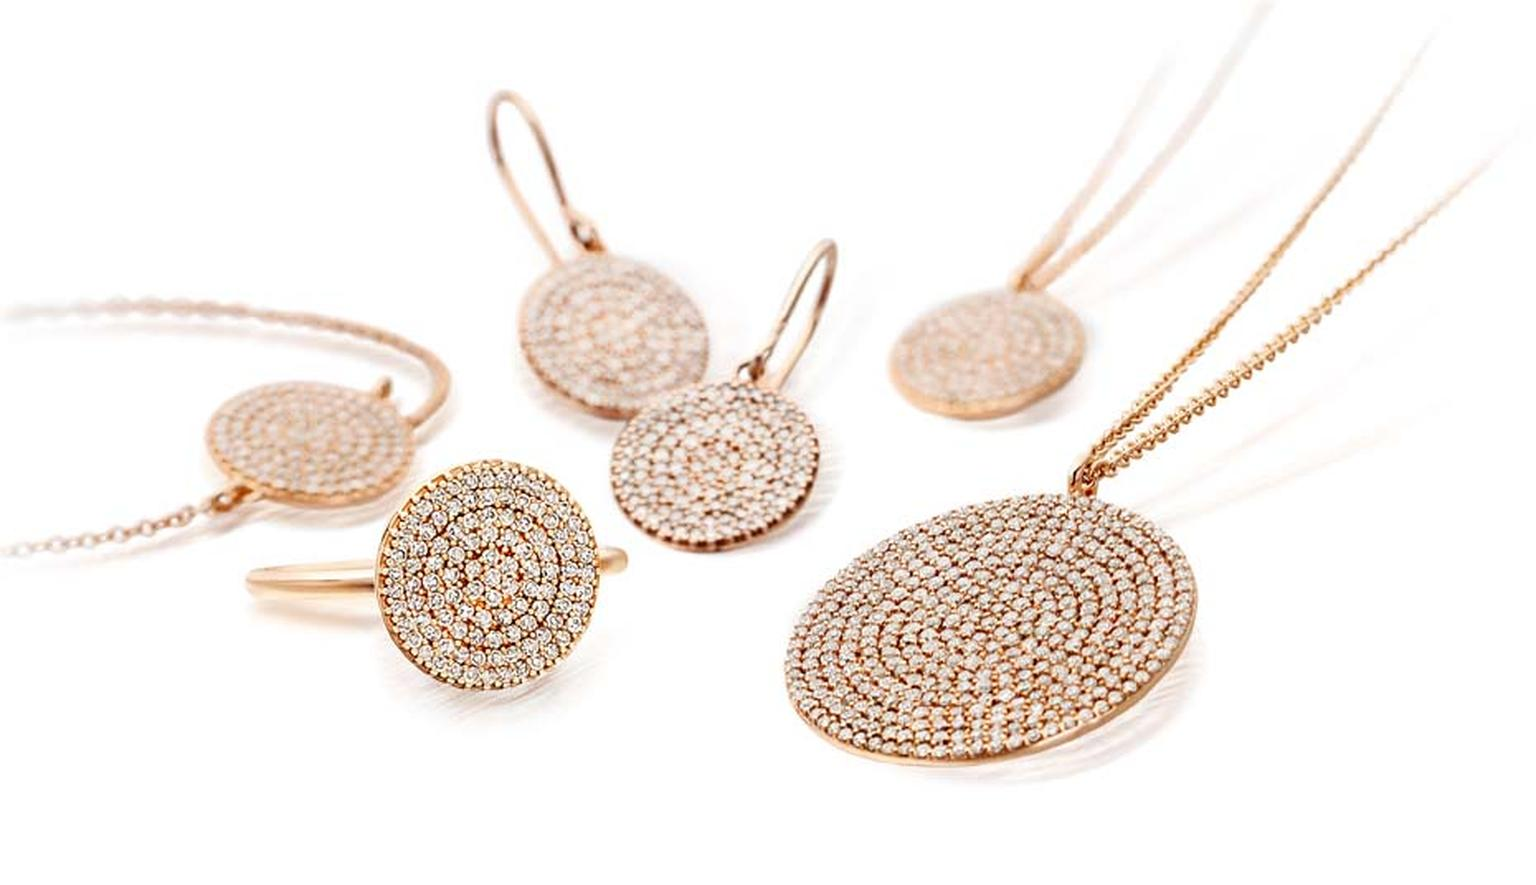 Astley Clarke Muse collection features rings, pendants, bracelets and earrings in rose gold with silver grey diamonds. The open setting at the back enables light to flow through.